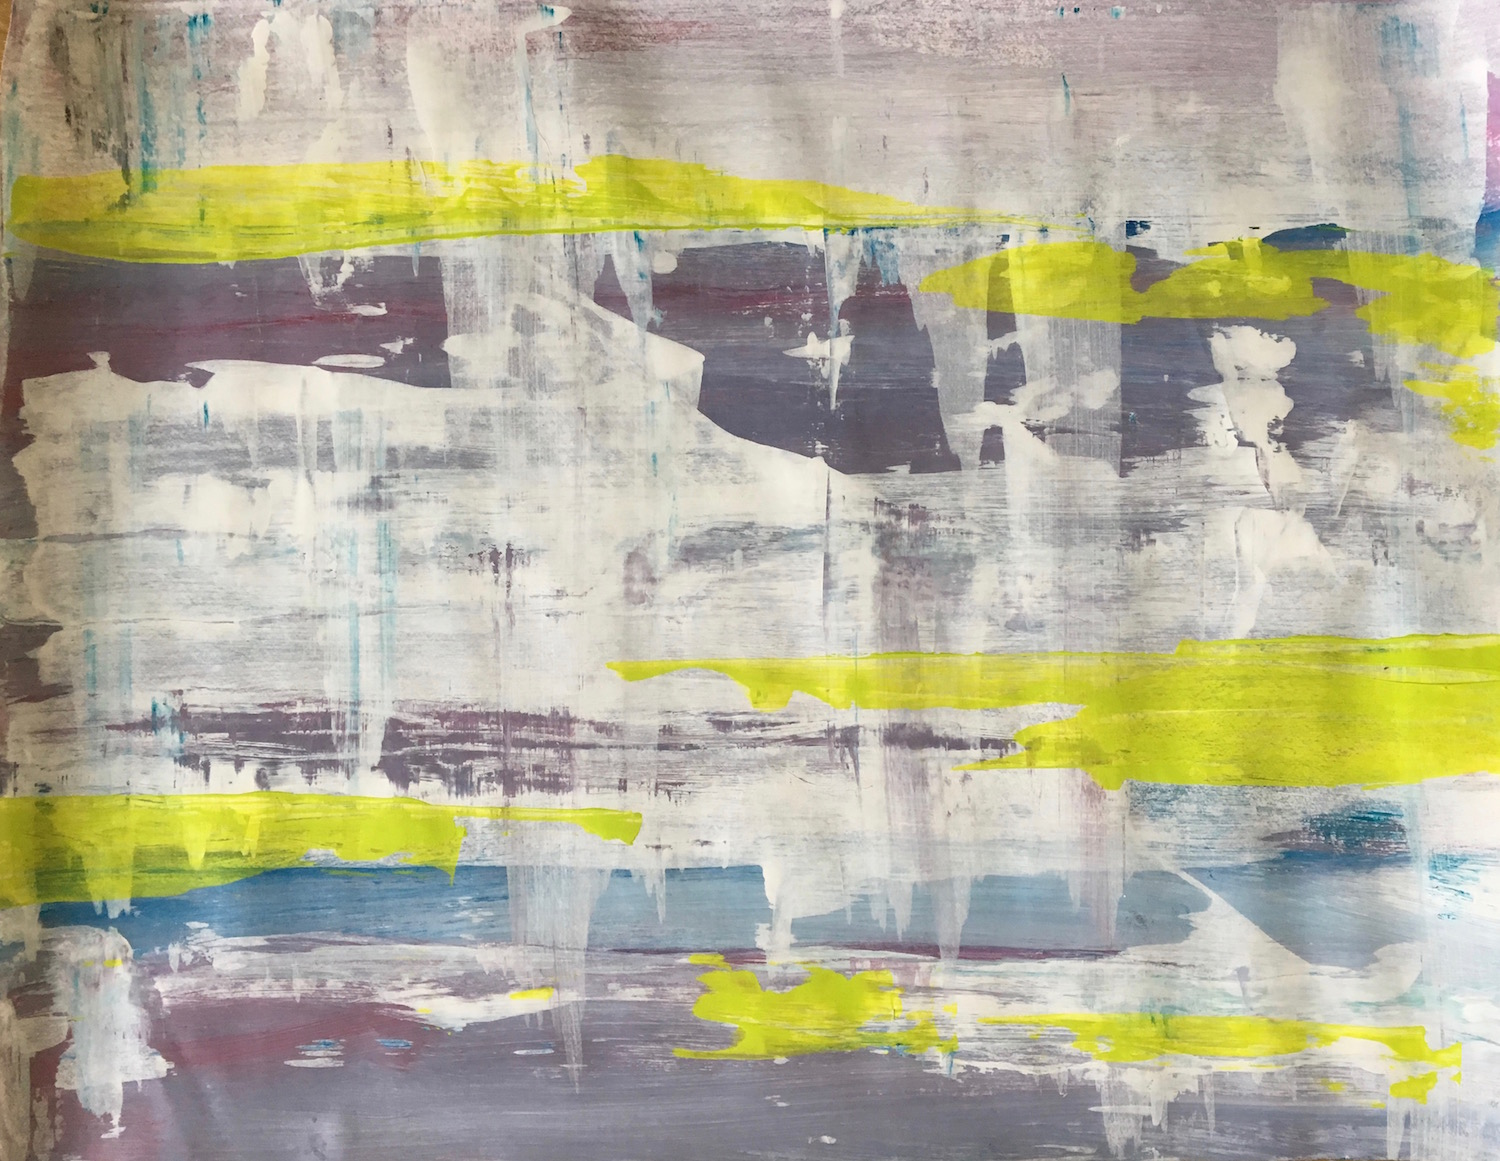 """Exhale - 26"""" X 20"""" Acrylic on paper$30 - $80"""